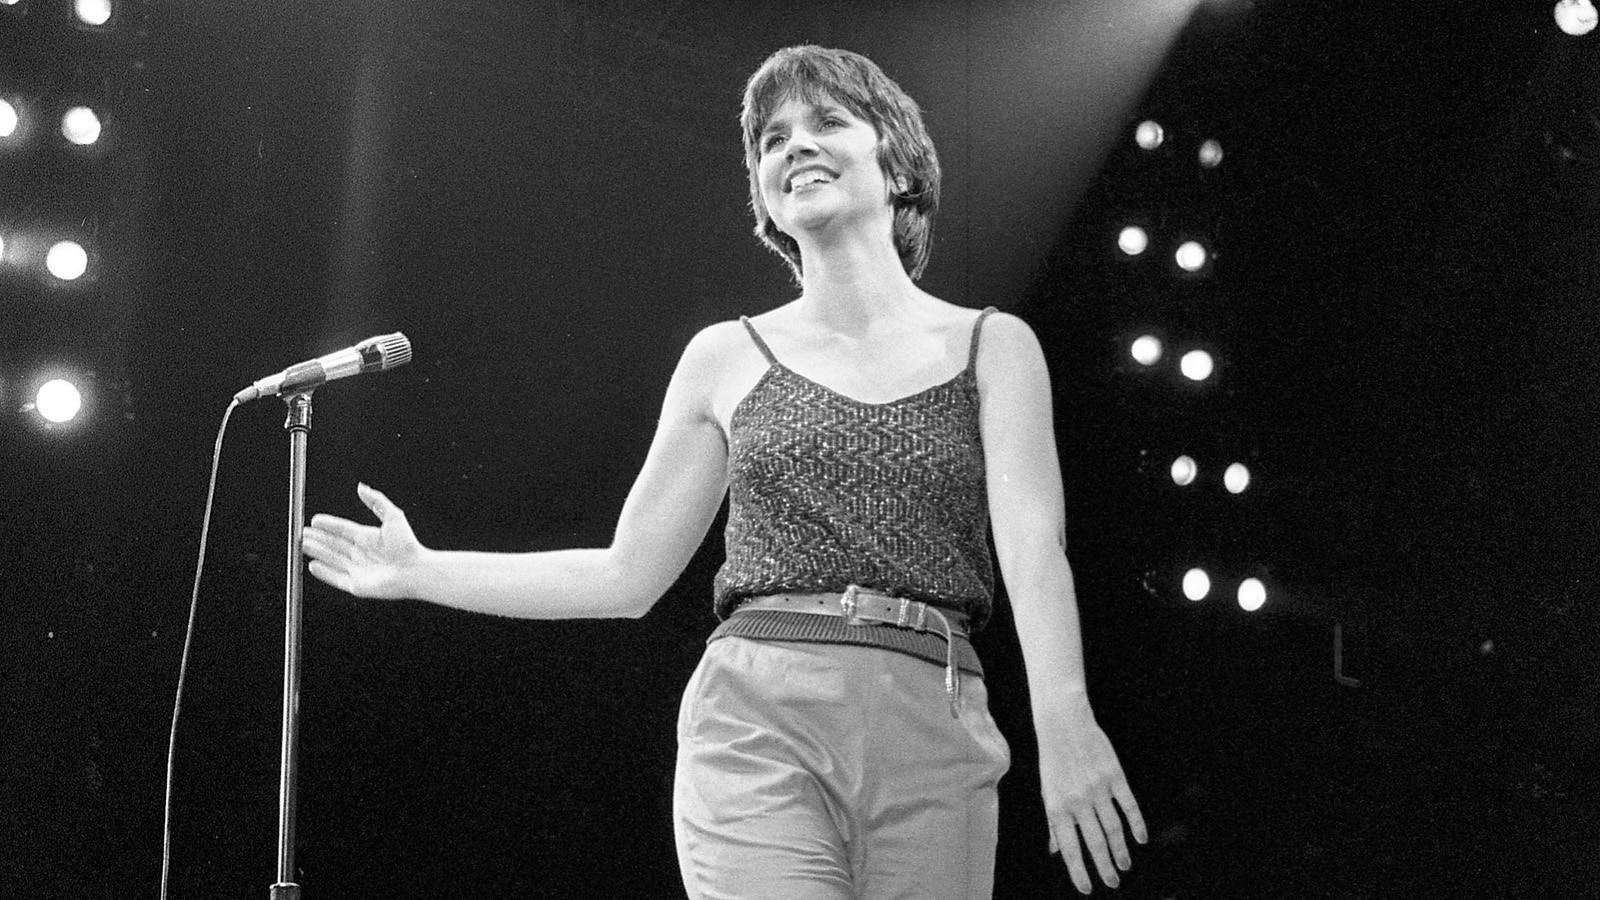 A Star Is Born: Linda Ronstadt turns 71 today - LA Times